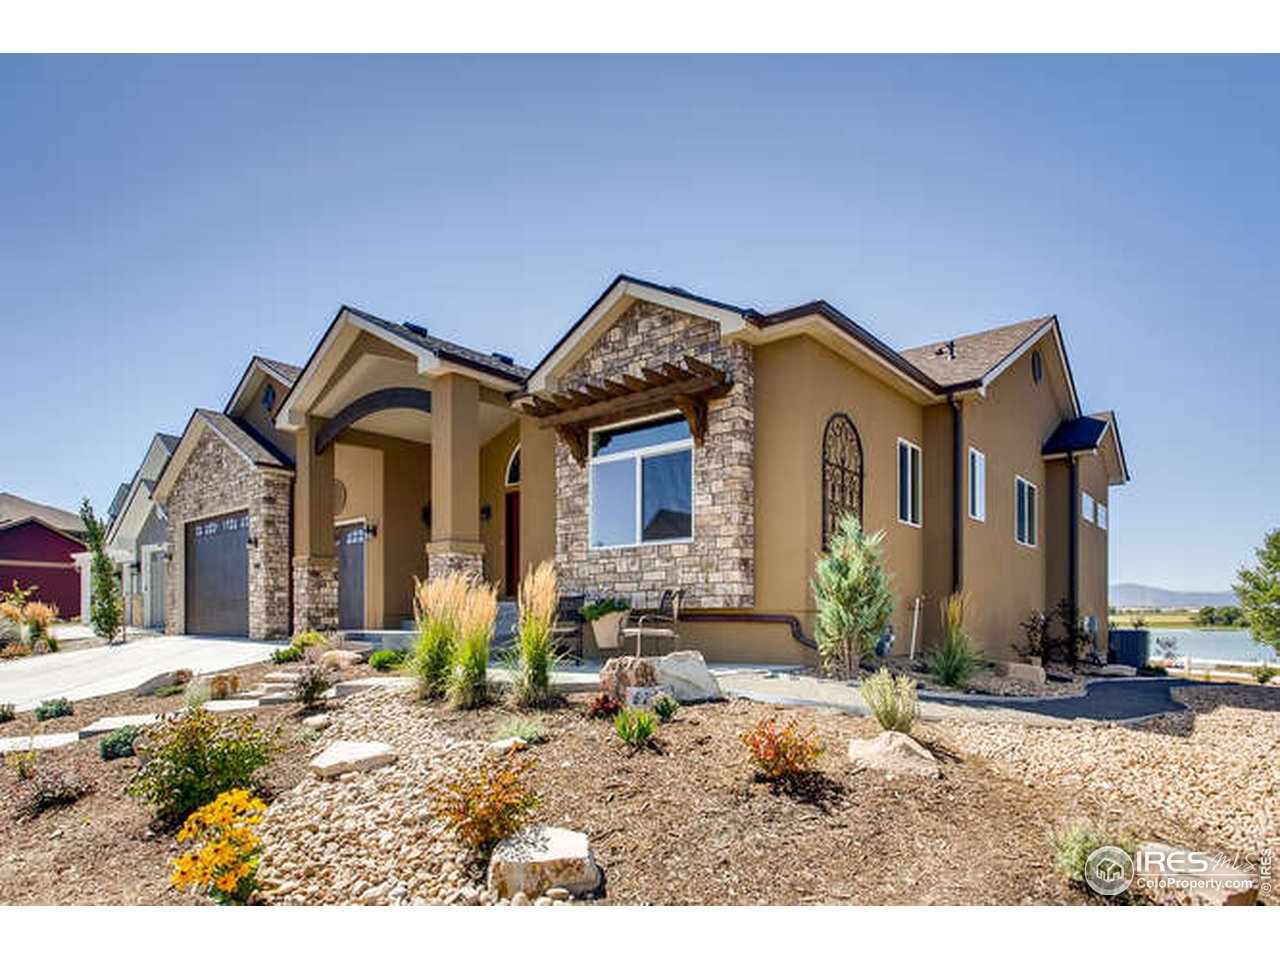 6205 Clearwater Dr, Loveland CO 80538